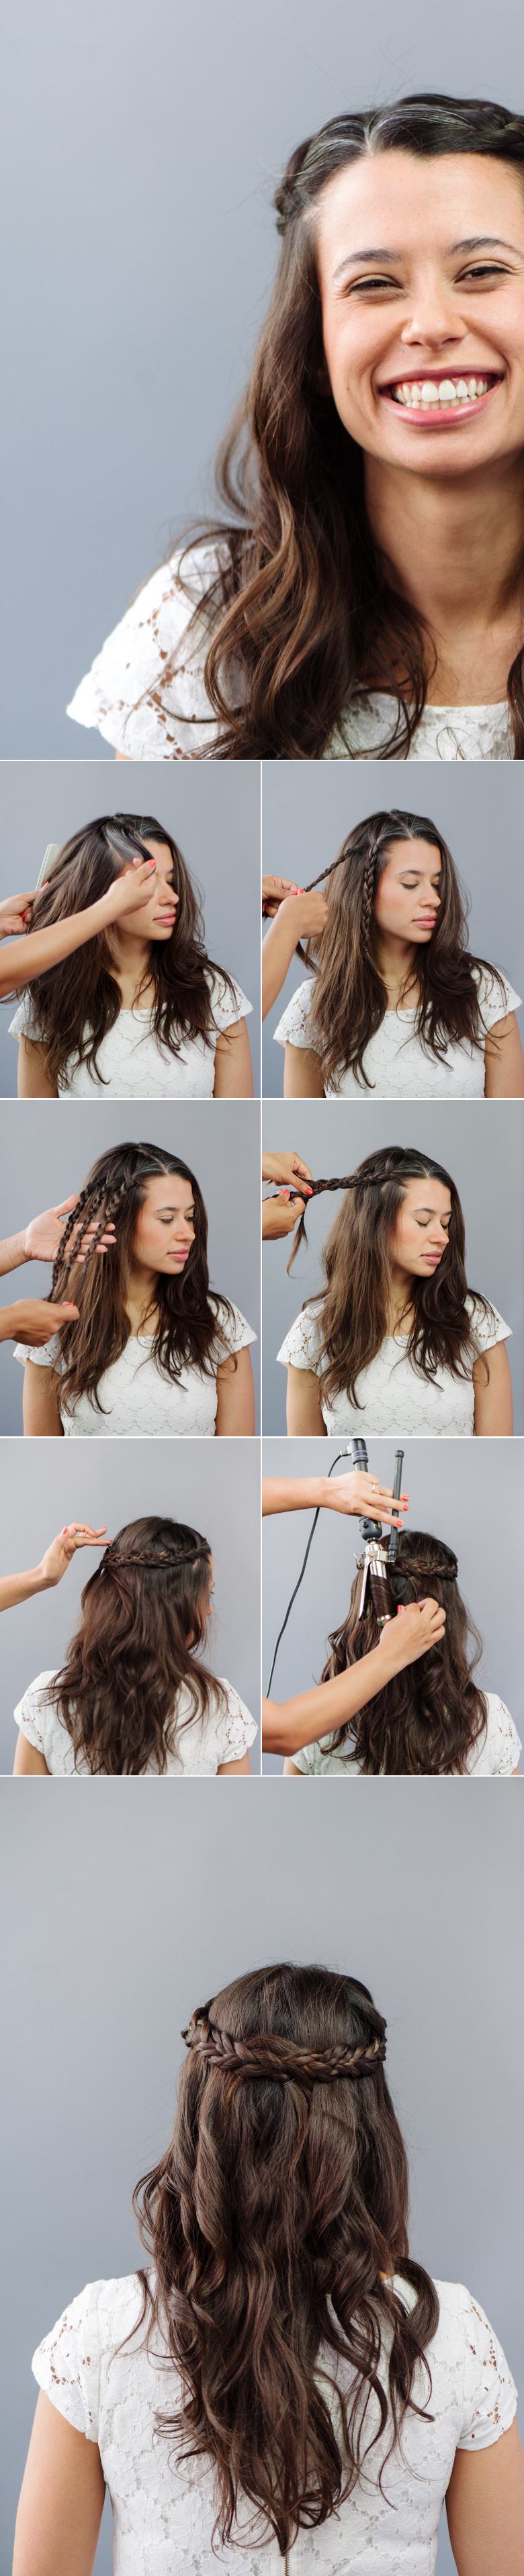 How To: Braided Wedding Hair for Beginners | A Practical Wedding